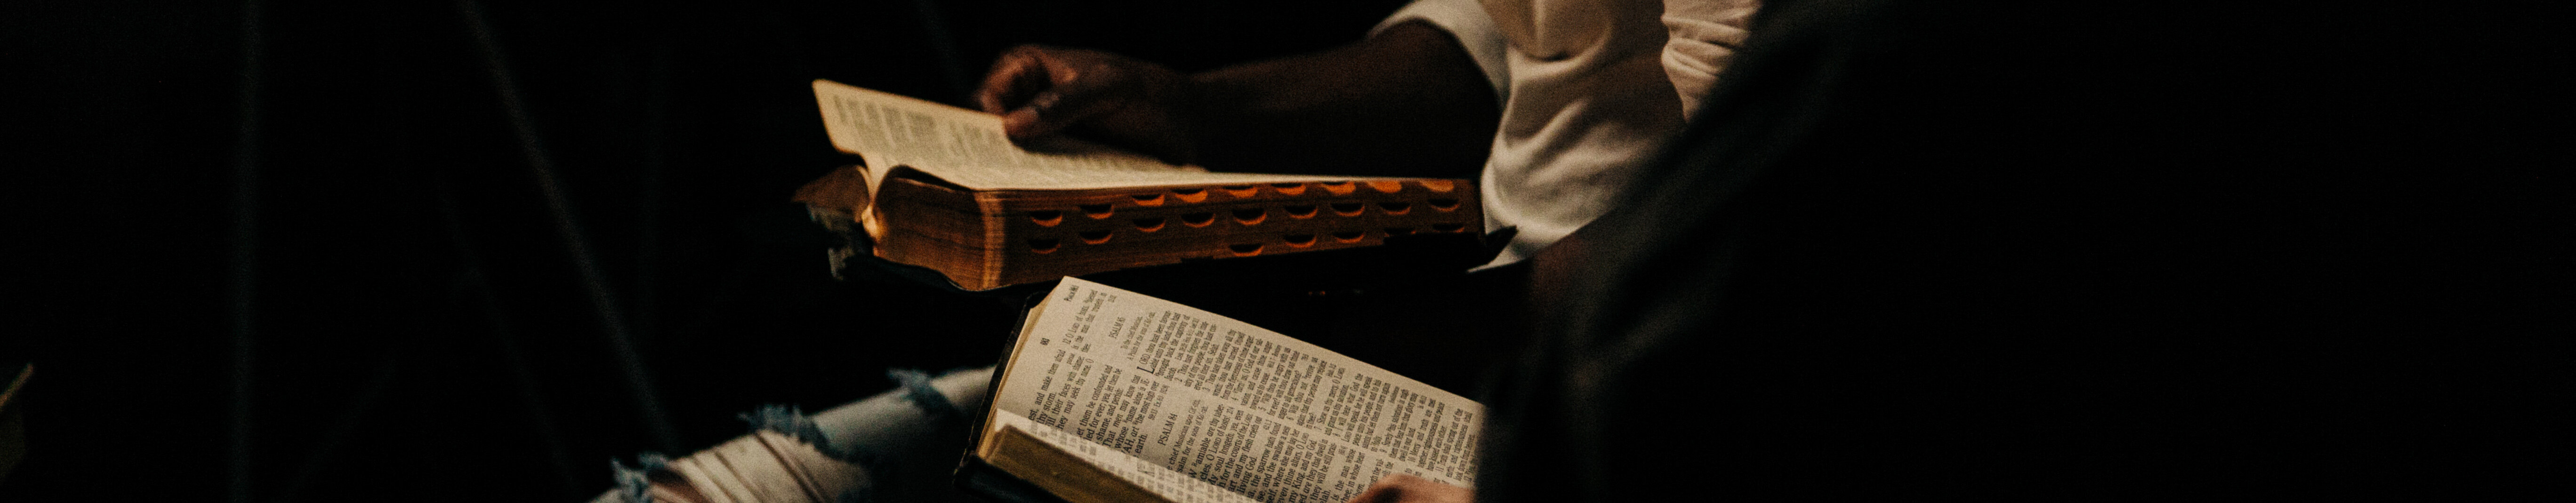 Read the New Testament: Week of March 15, 2021